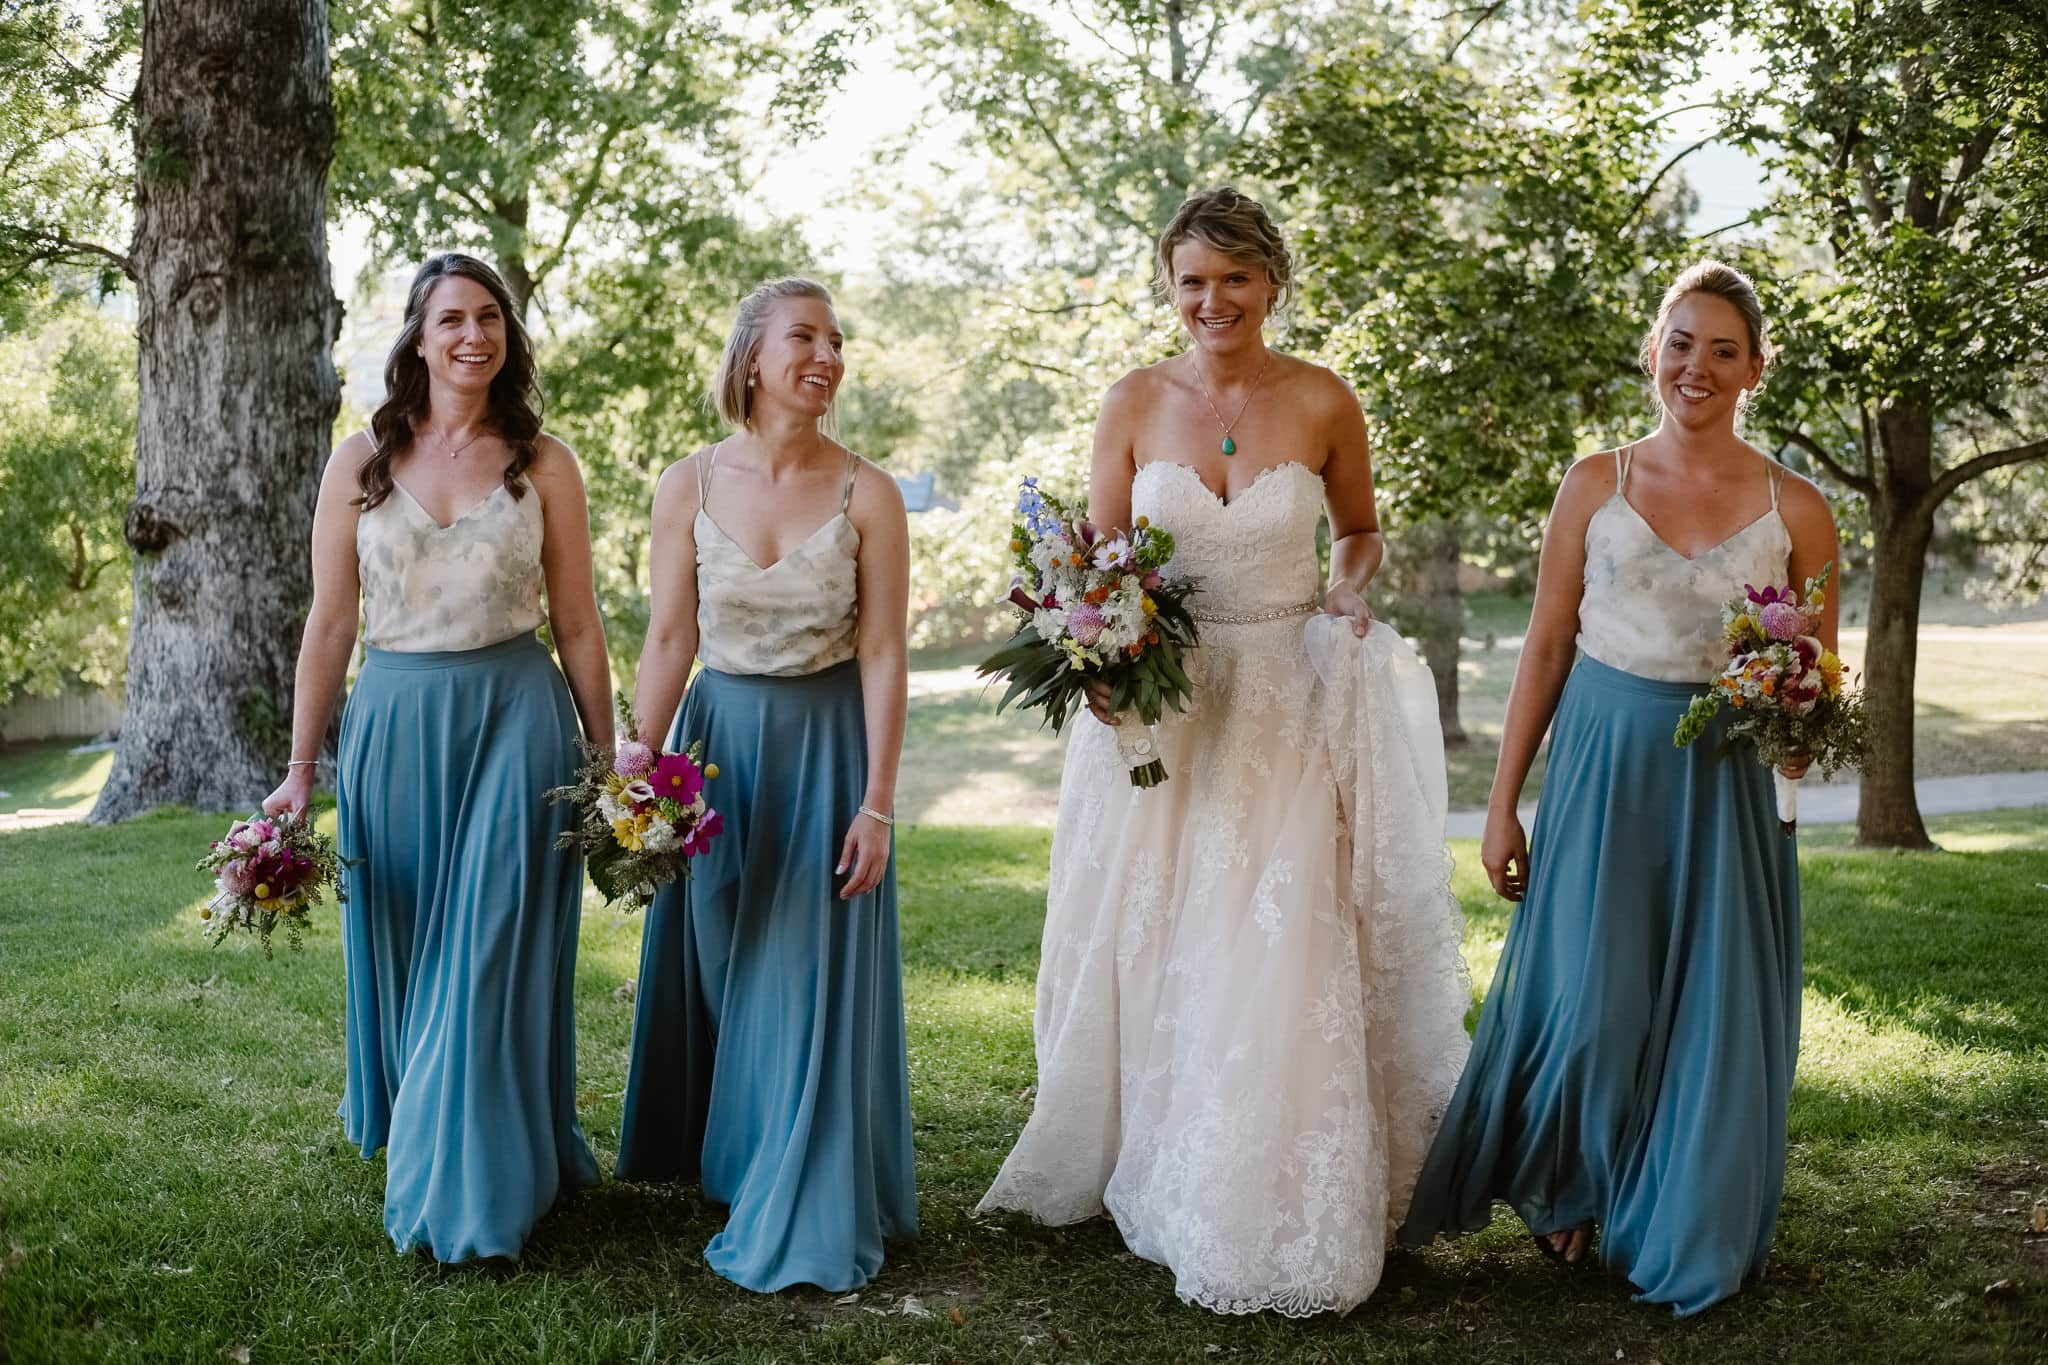 Grant Humphreys Mansion Wedding Photographer, Denver wedding photographer, Colorado wedding photographer, bride with bridesmaids, blue skirt and watercolor top bridesmaids outfits, Jenny Yoo bridesmaids